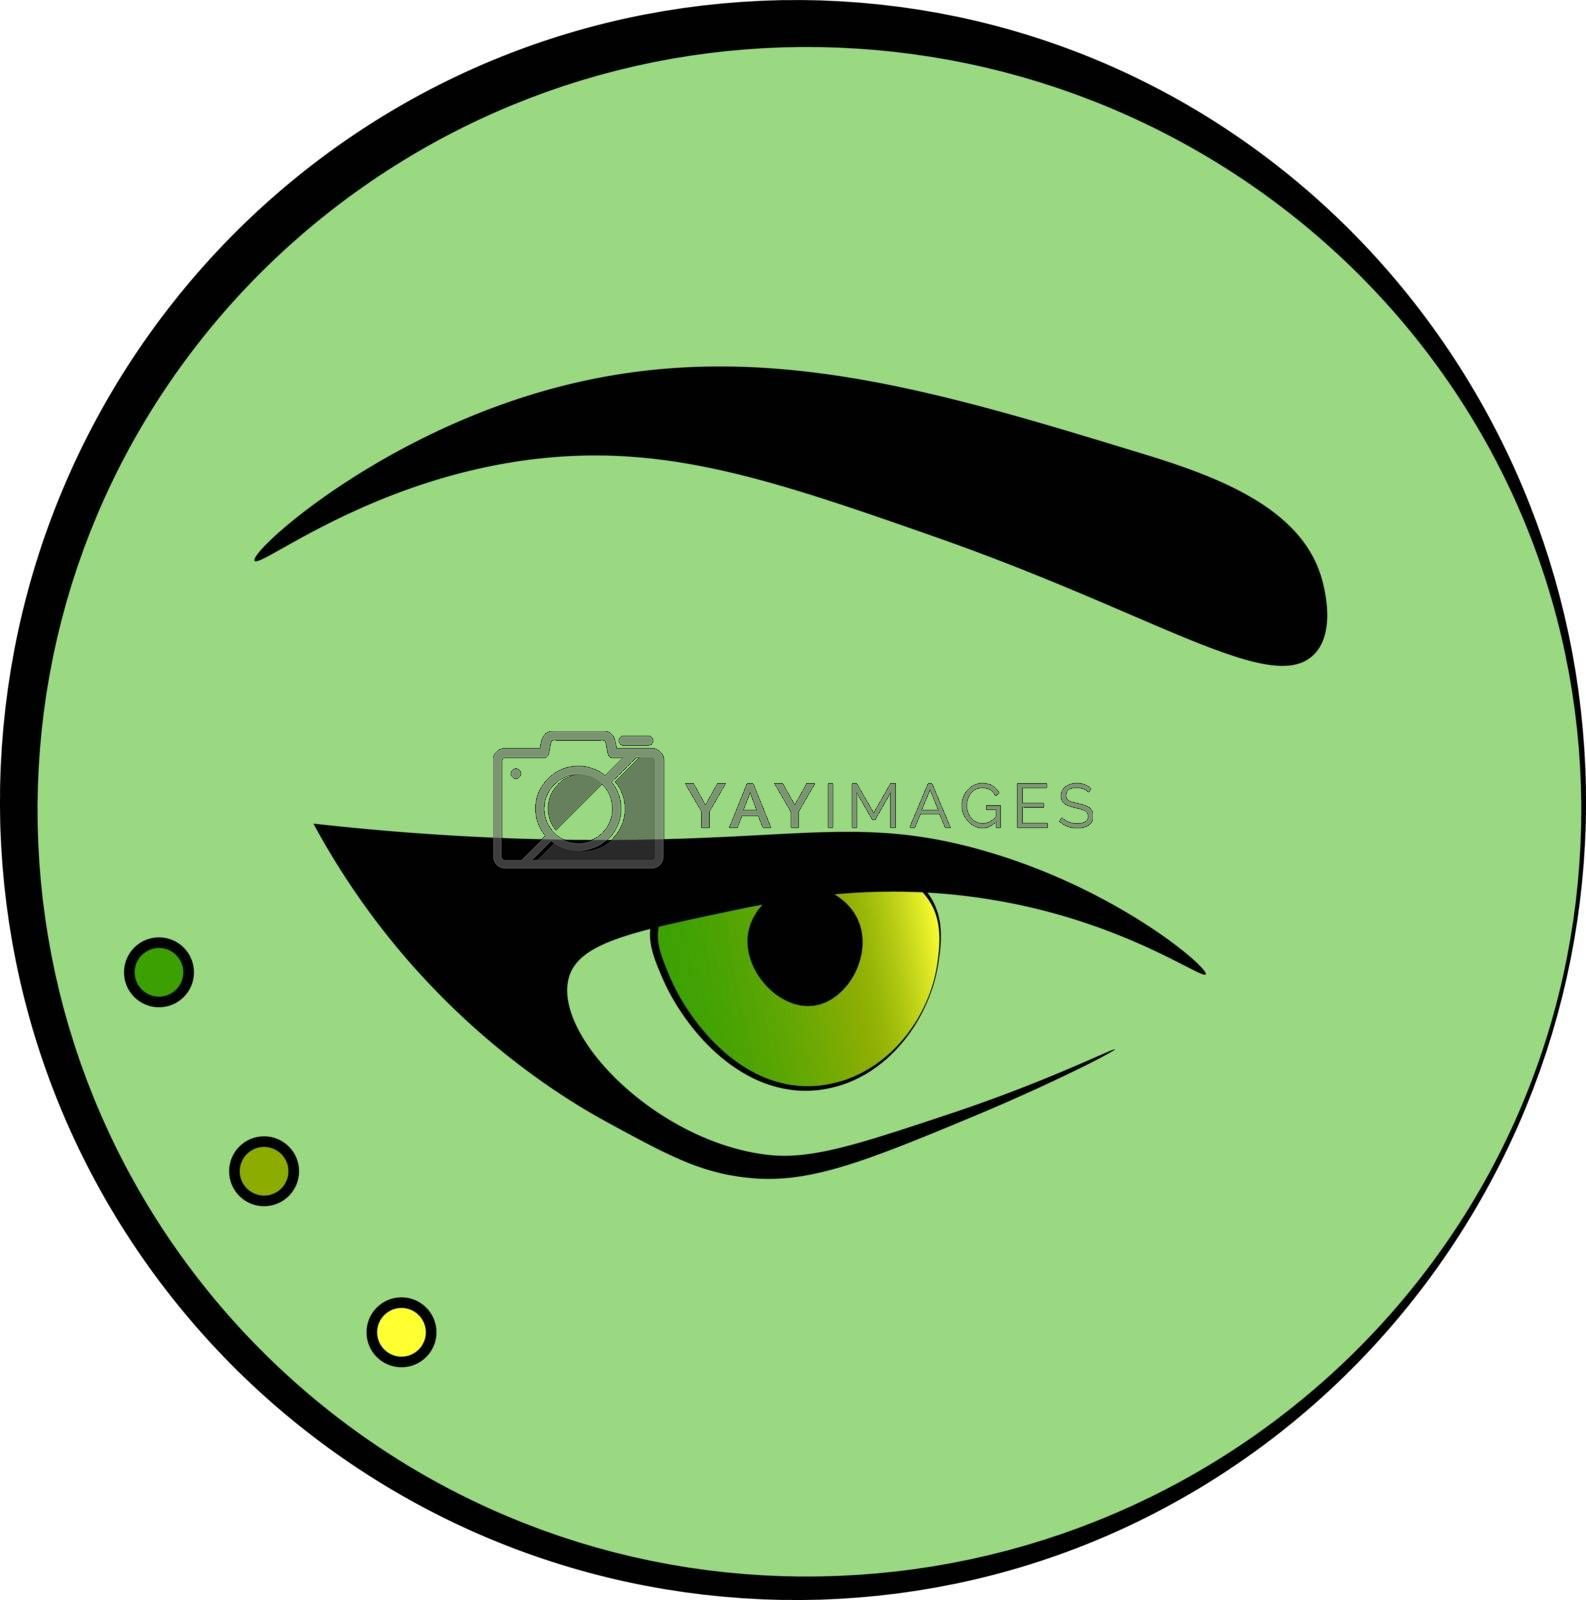 Fashion and make up icon: an eye and an eyebrow in the green circle